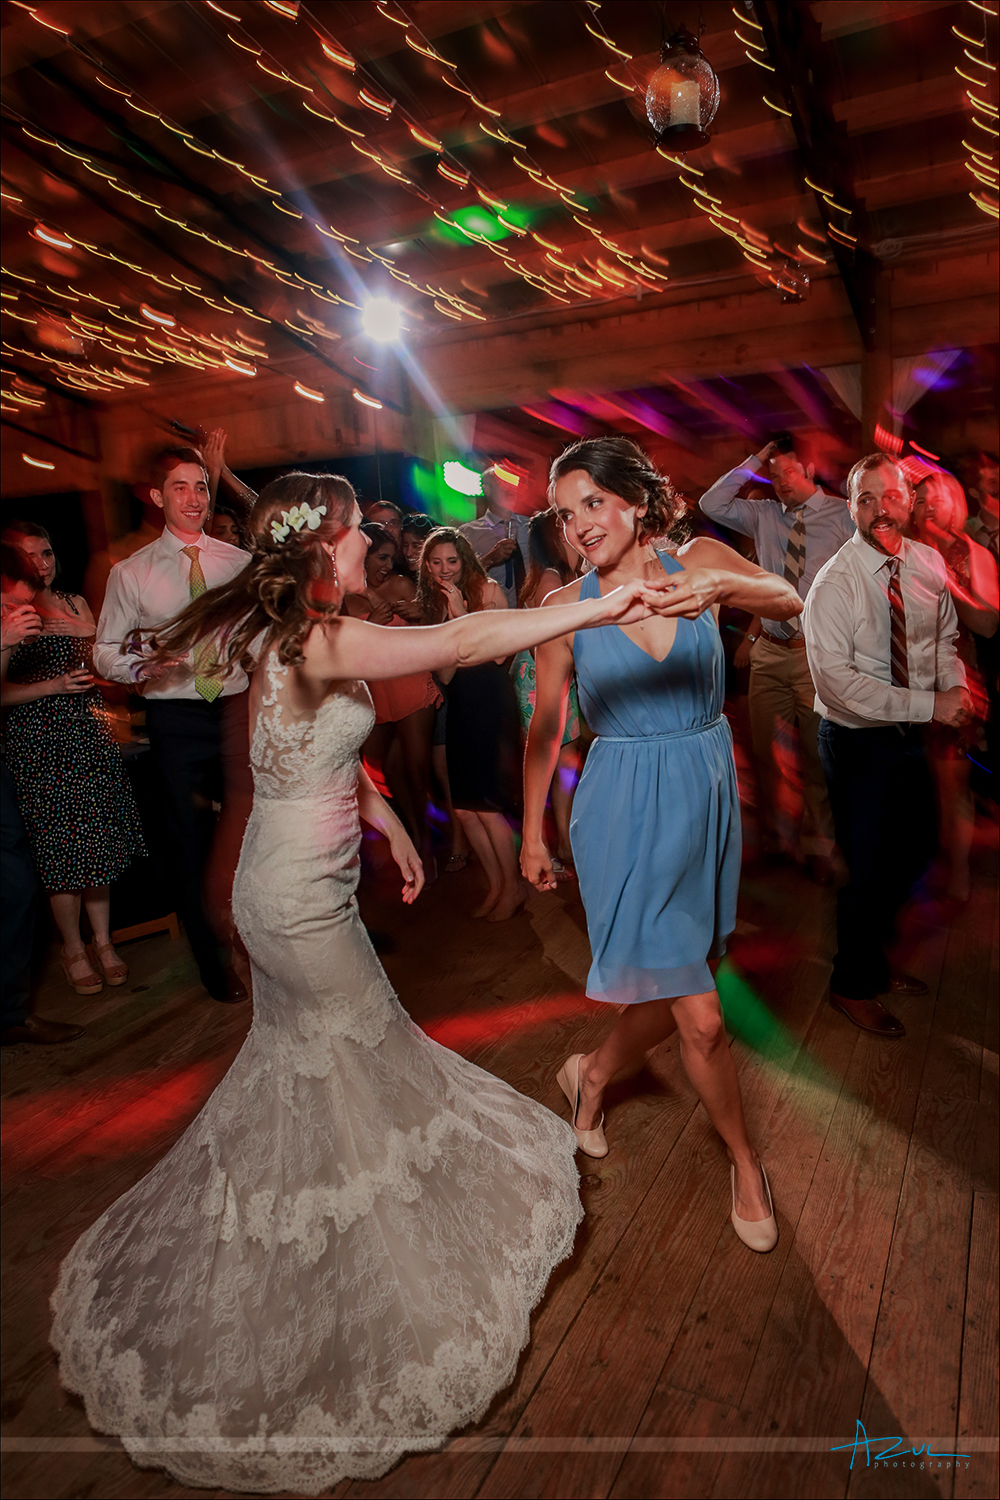 Family wedding reception dancing in North Carolina inside a barn with great lighting by the photographer.